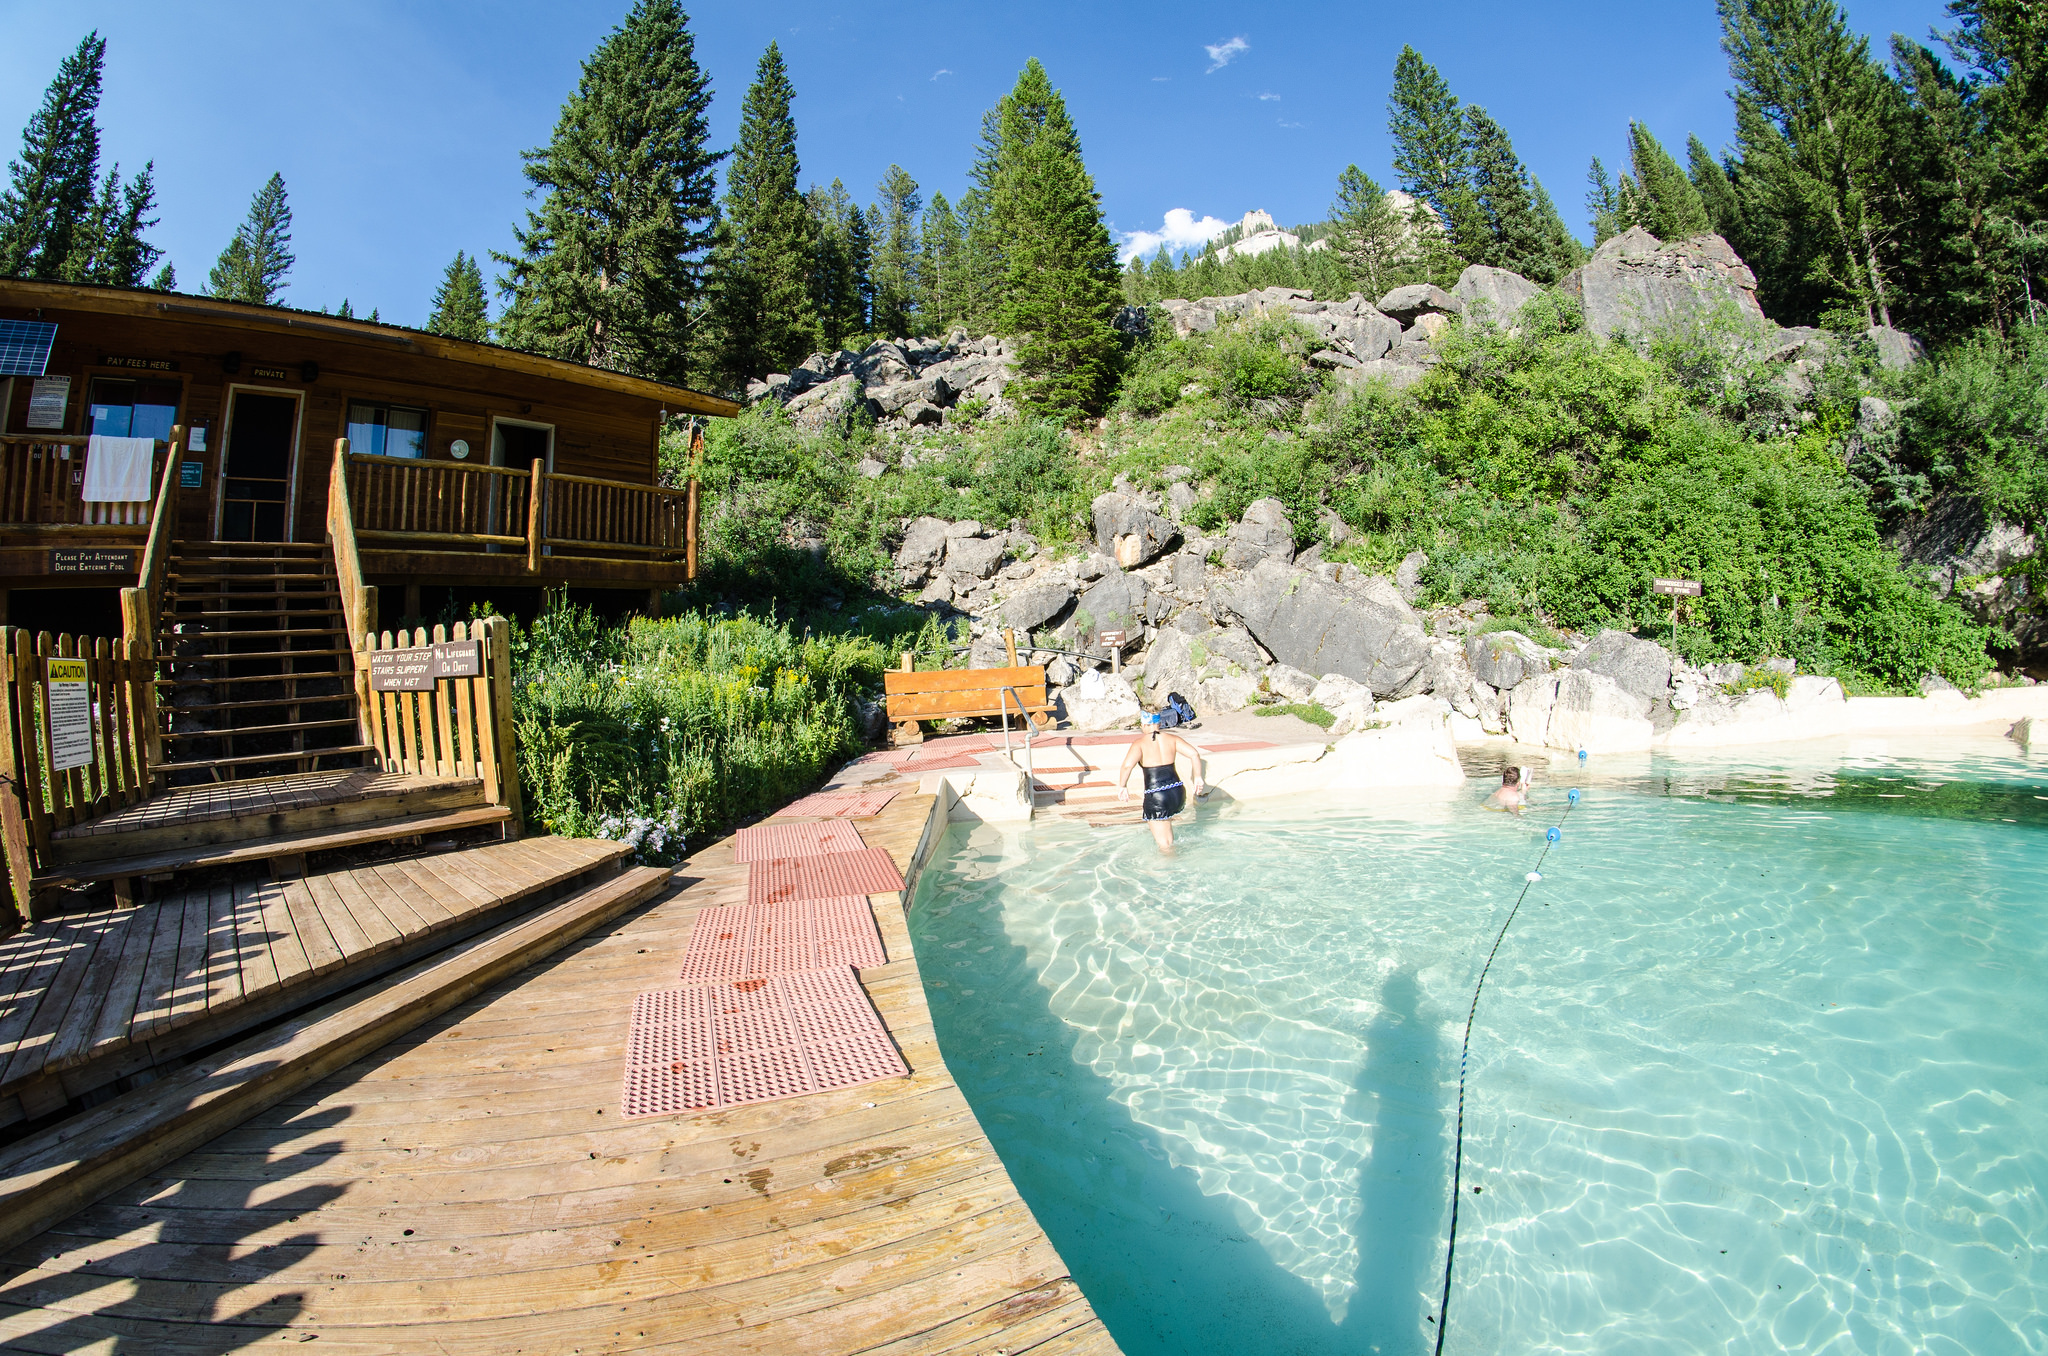 Granite Hot Springs - Just outside of Jackson, WY | © m01229/Flickr